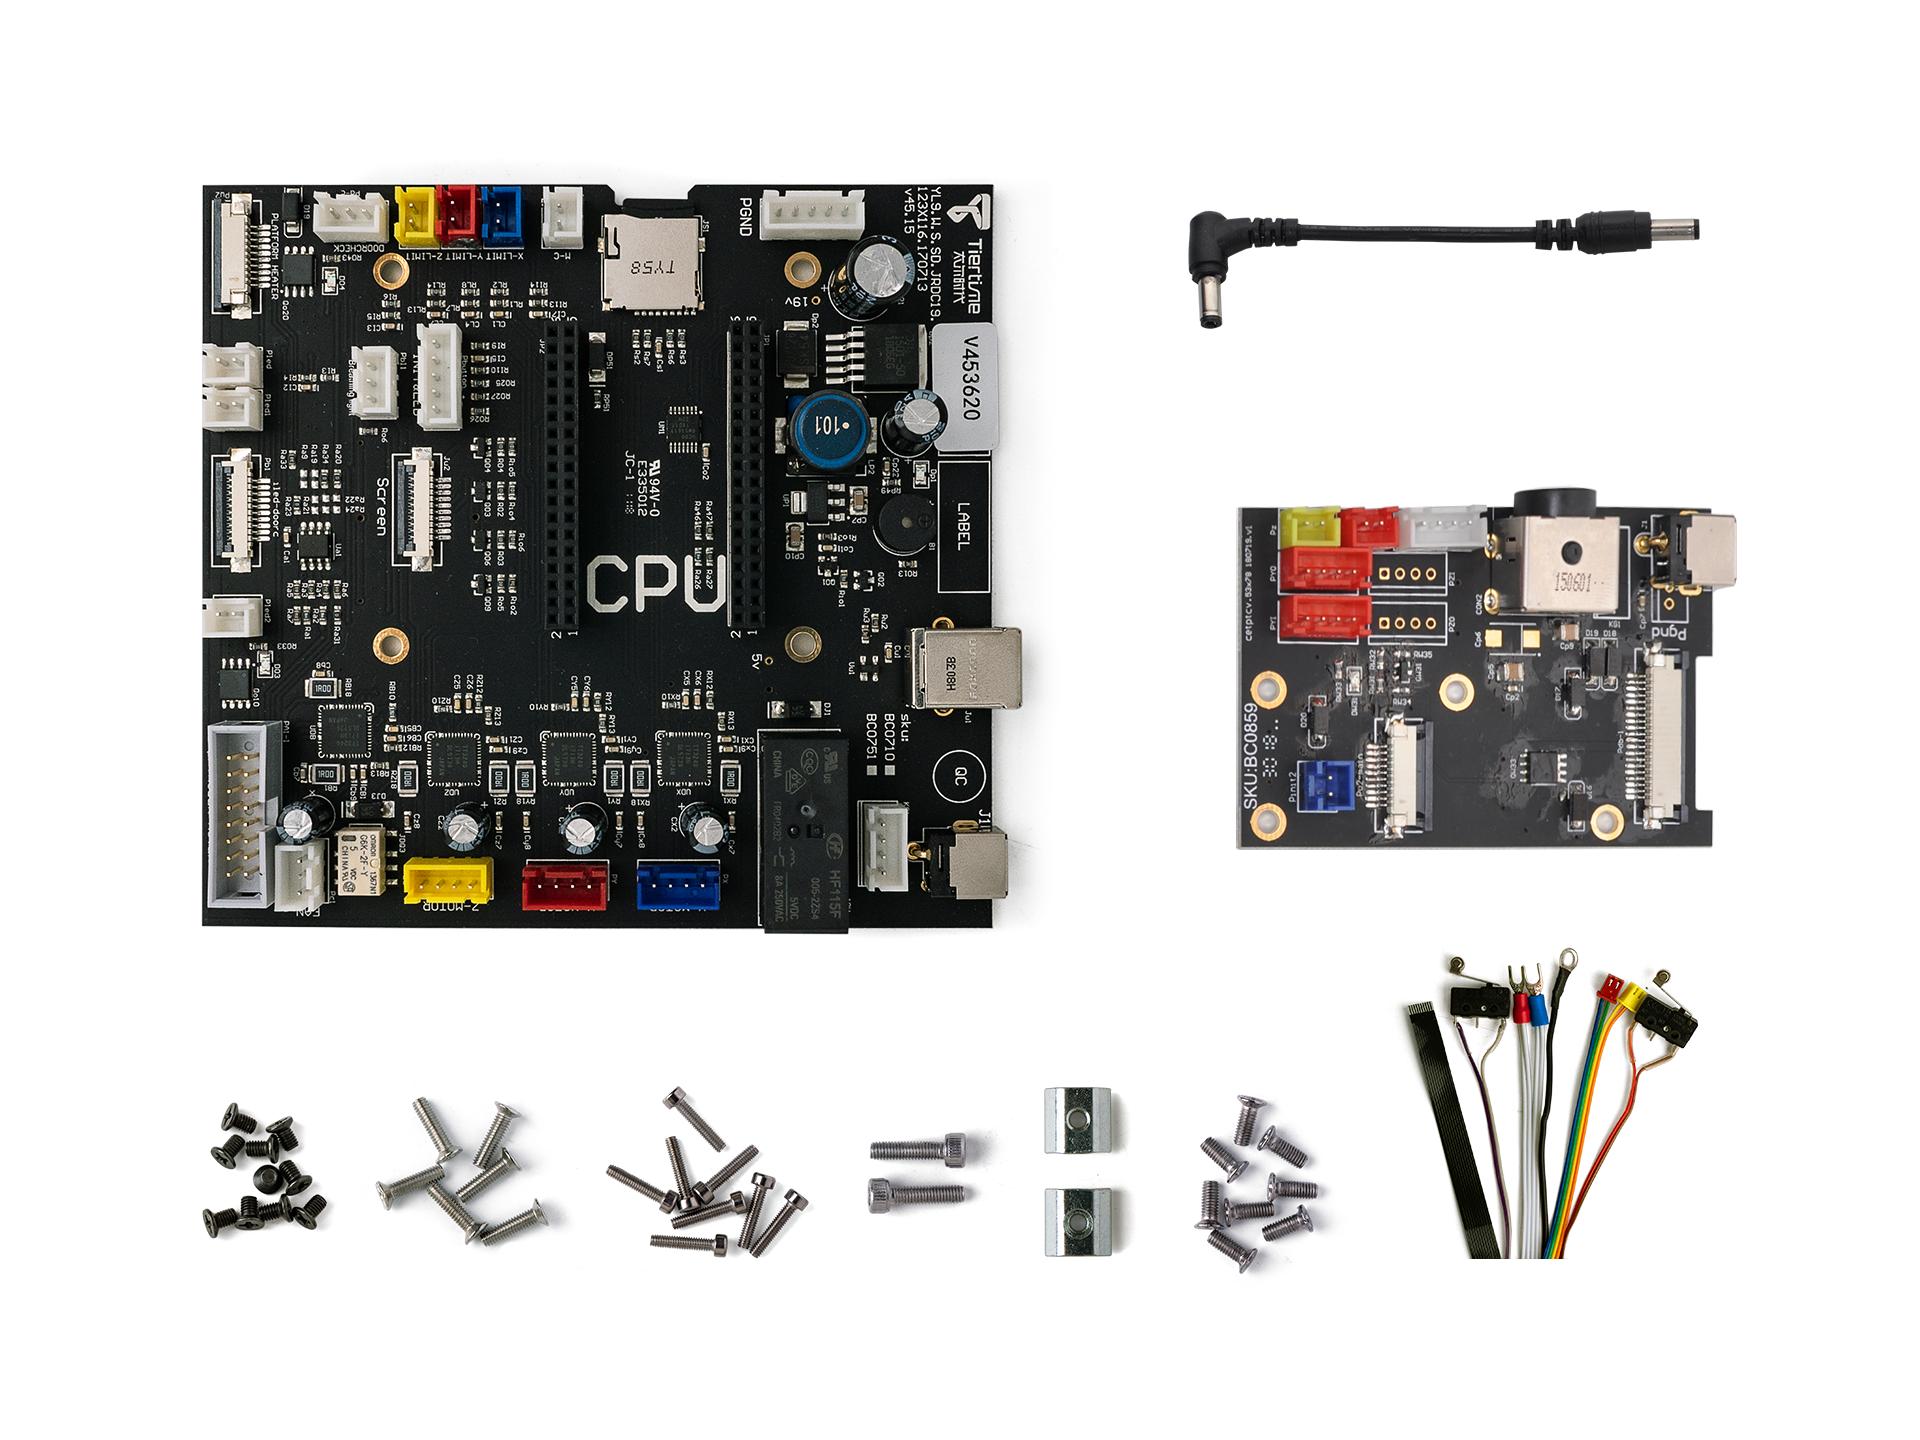 US Stock Tiertime Cetus3D Mainboard for MK2 3D Printer